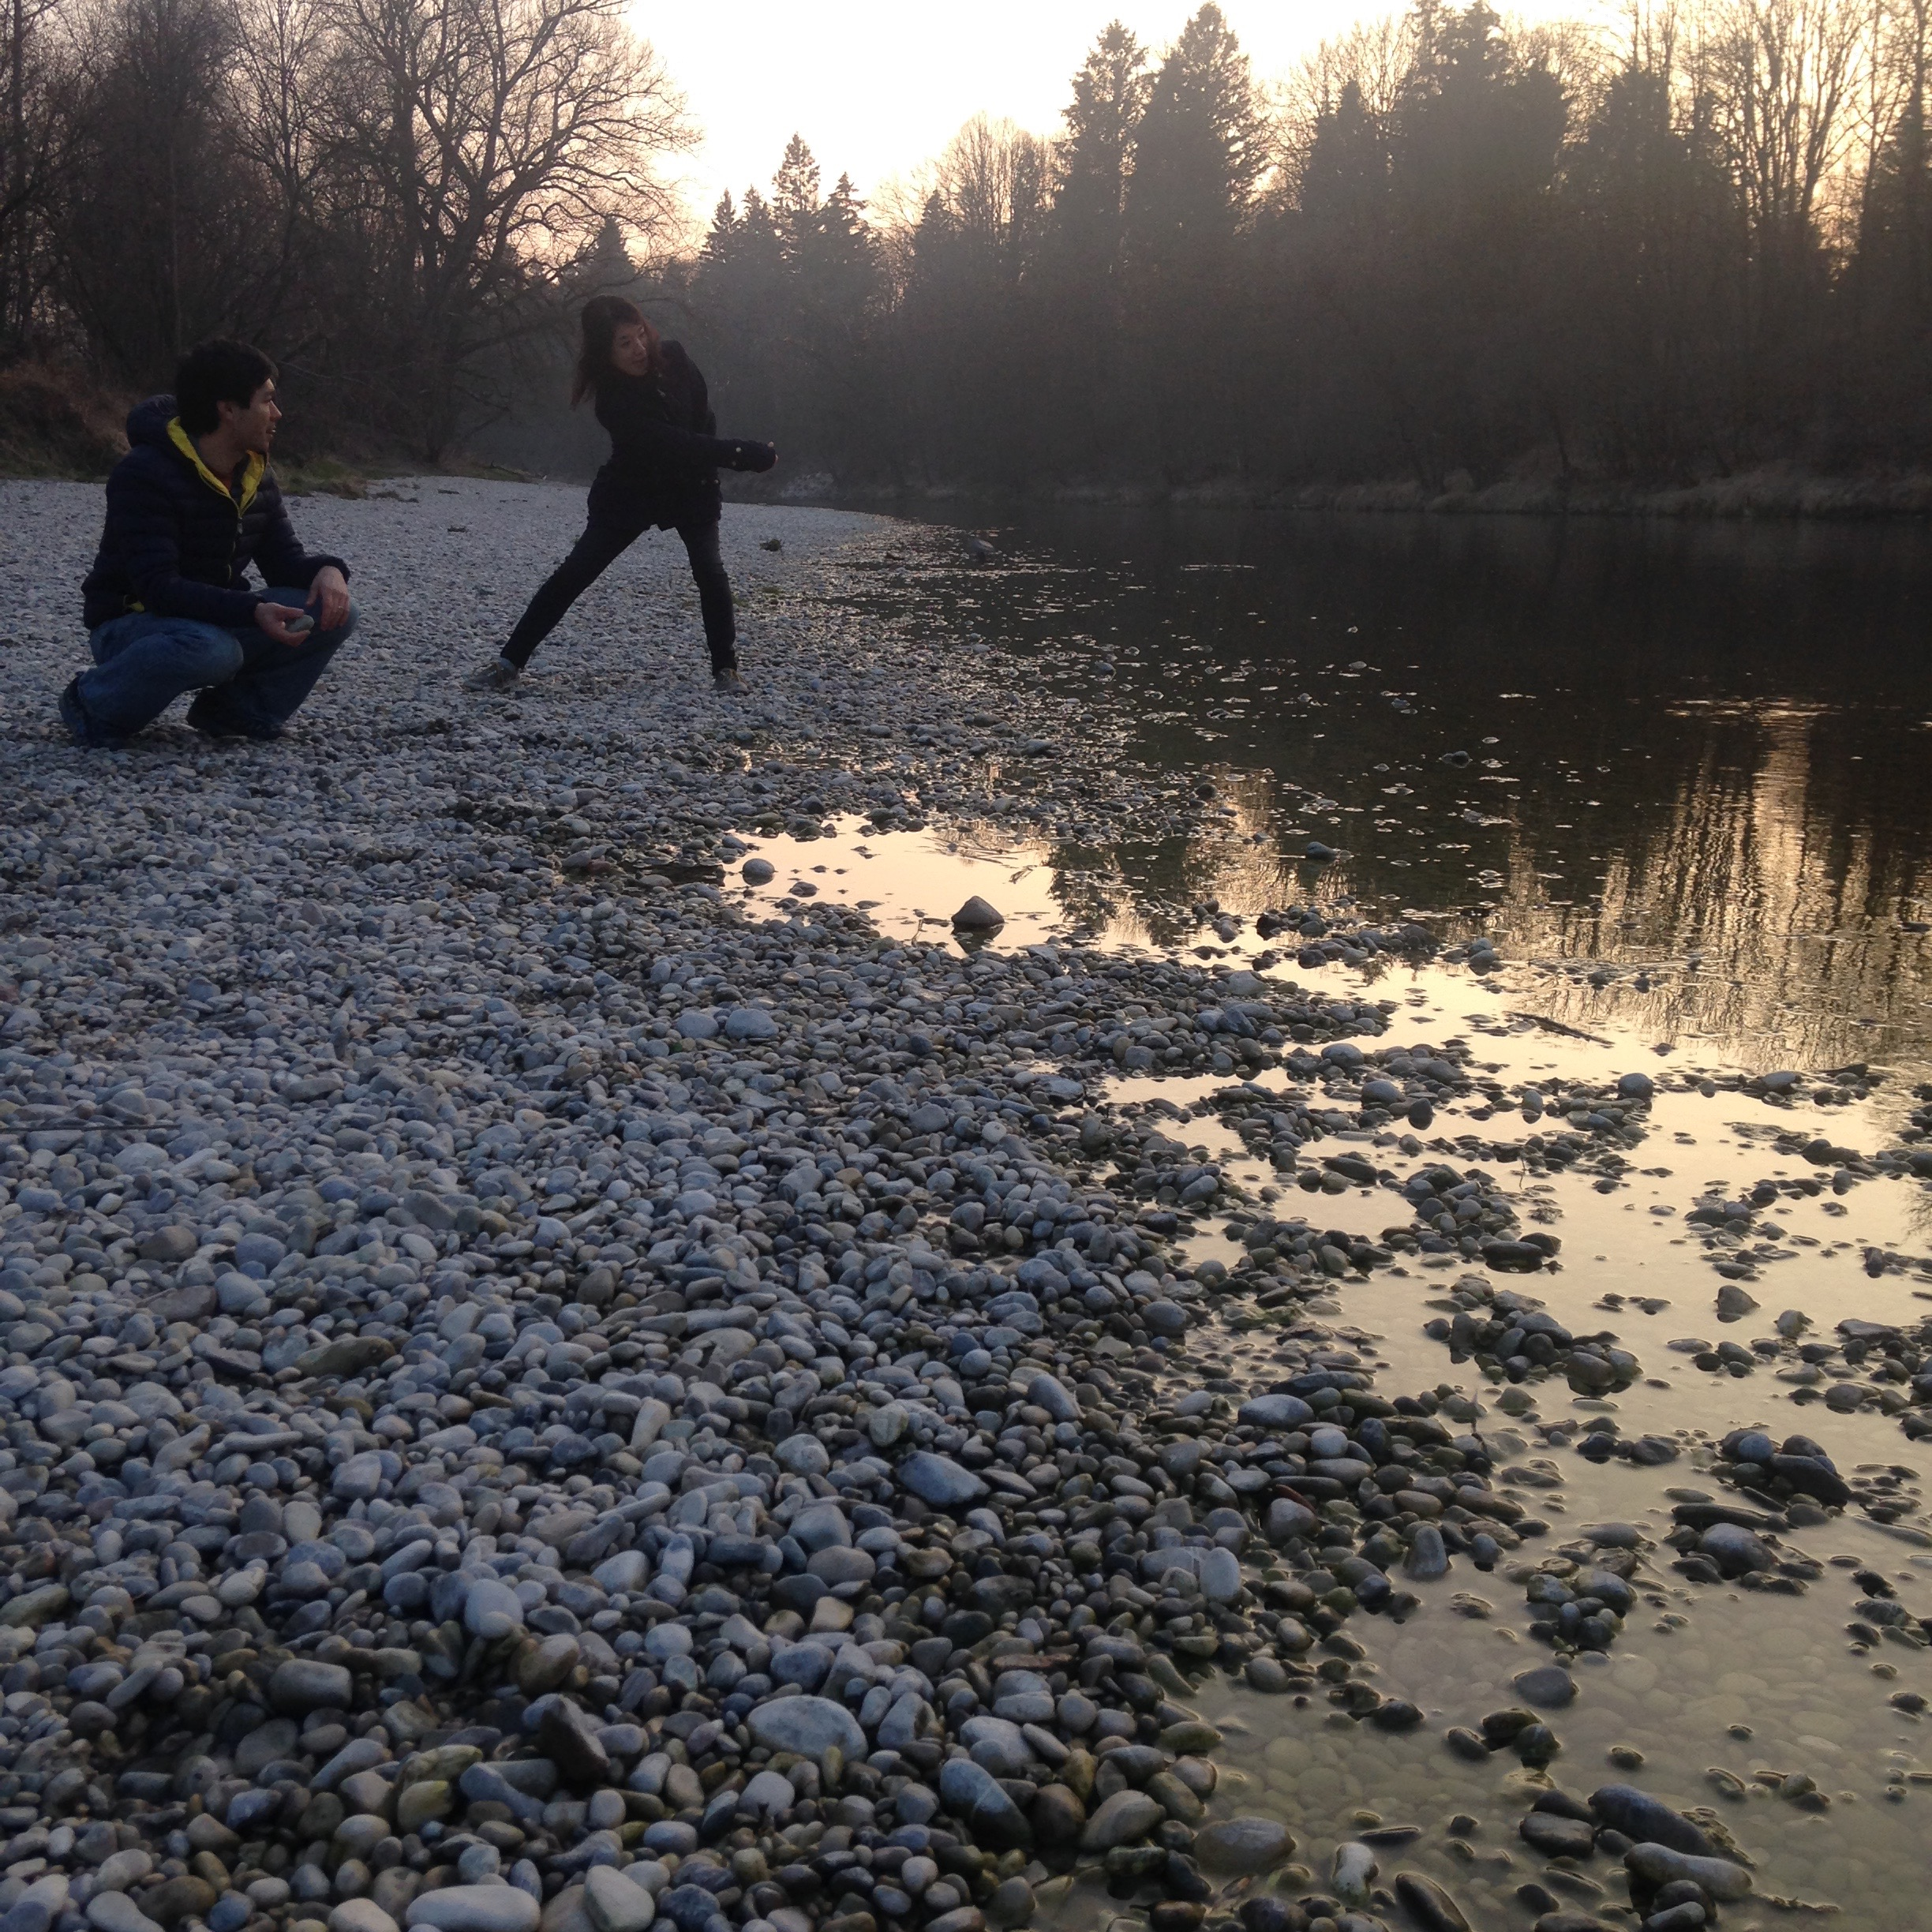 Skipping rocks on the river with friends.